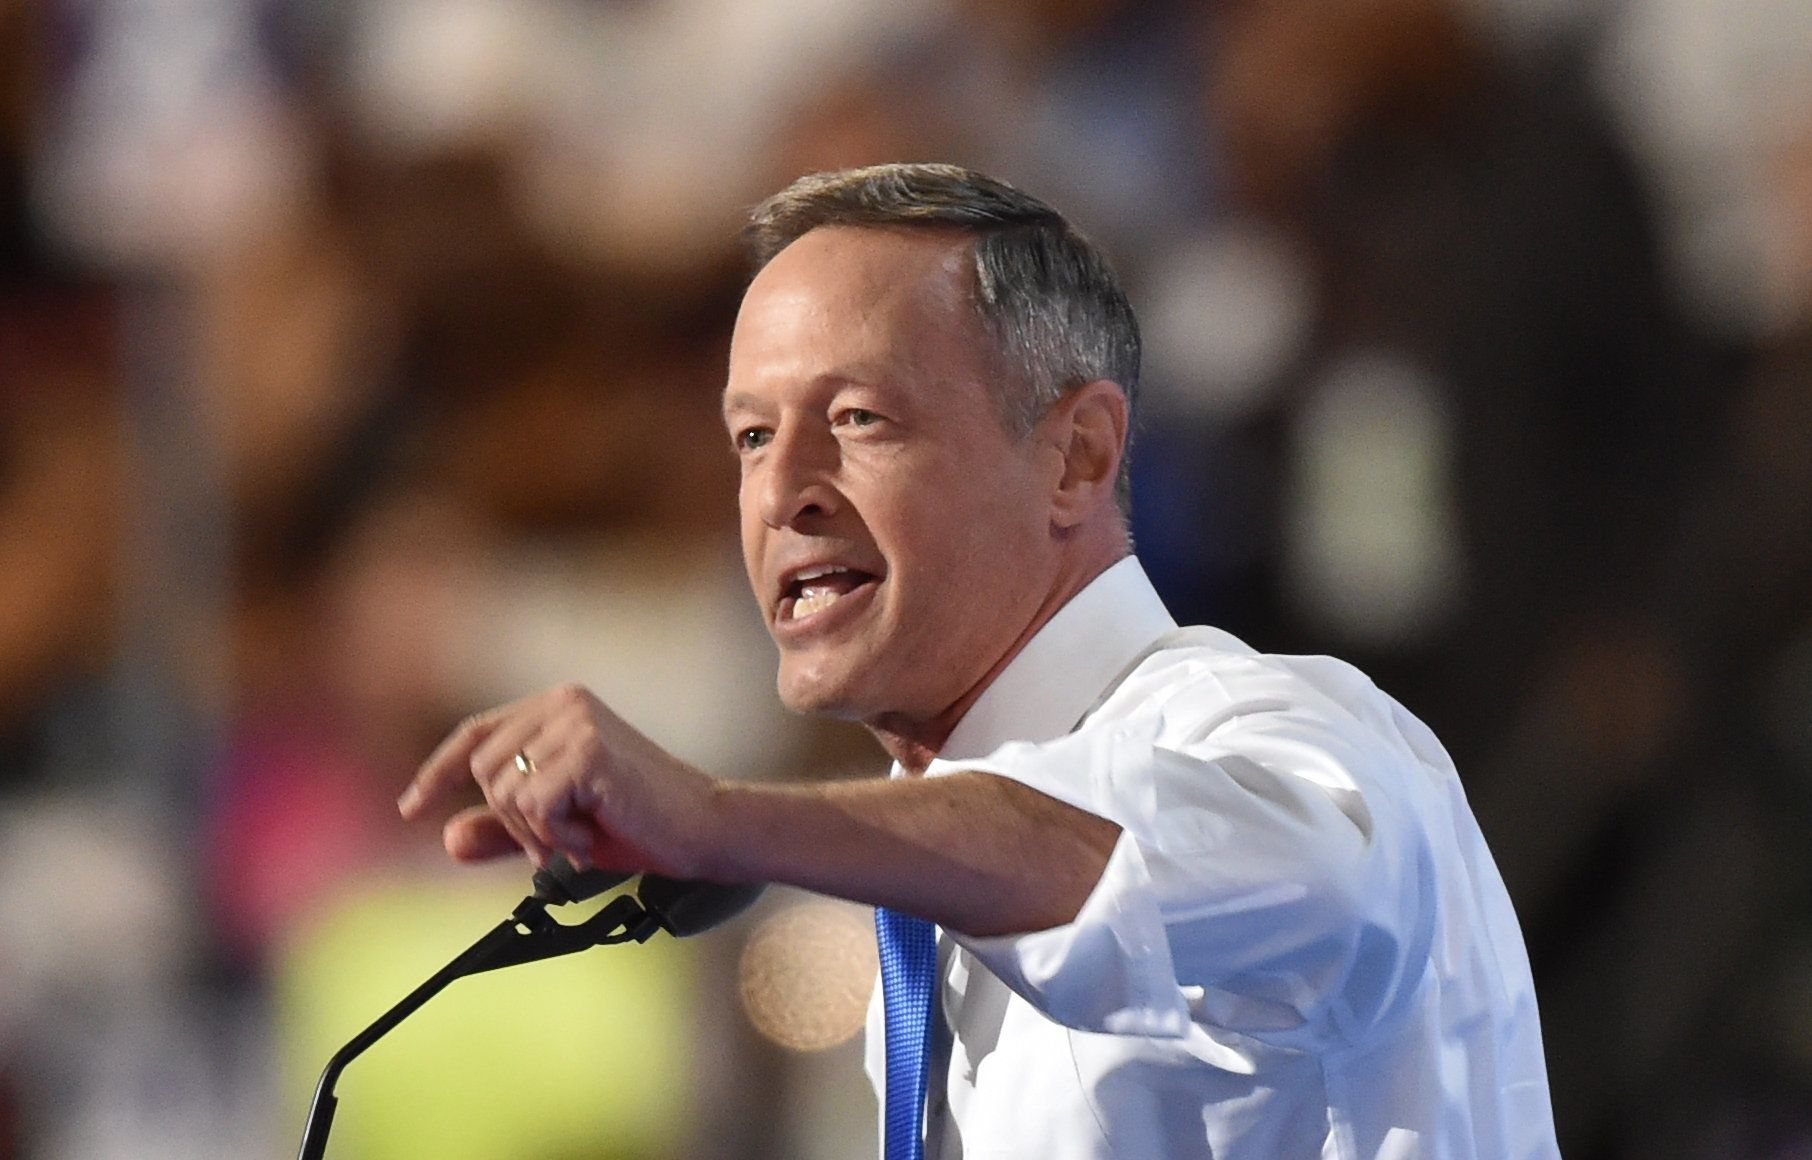 Former Governor of Maryland Martin O'Malley speaks during day three of the Democratic National Convention at the Wells Fargo Center in Philadelphia, Pennsylvania, July 27, 2016. / AFP / Nicholas Kamm        (Photo credit should read NICHOLAS KAMM/AFP/Getty Images)